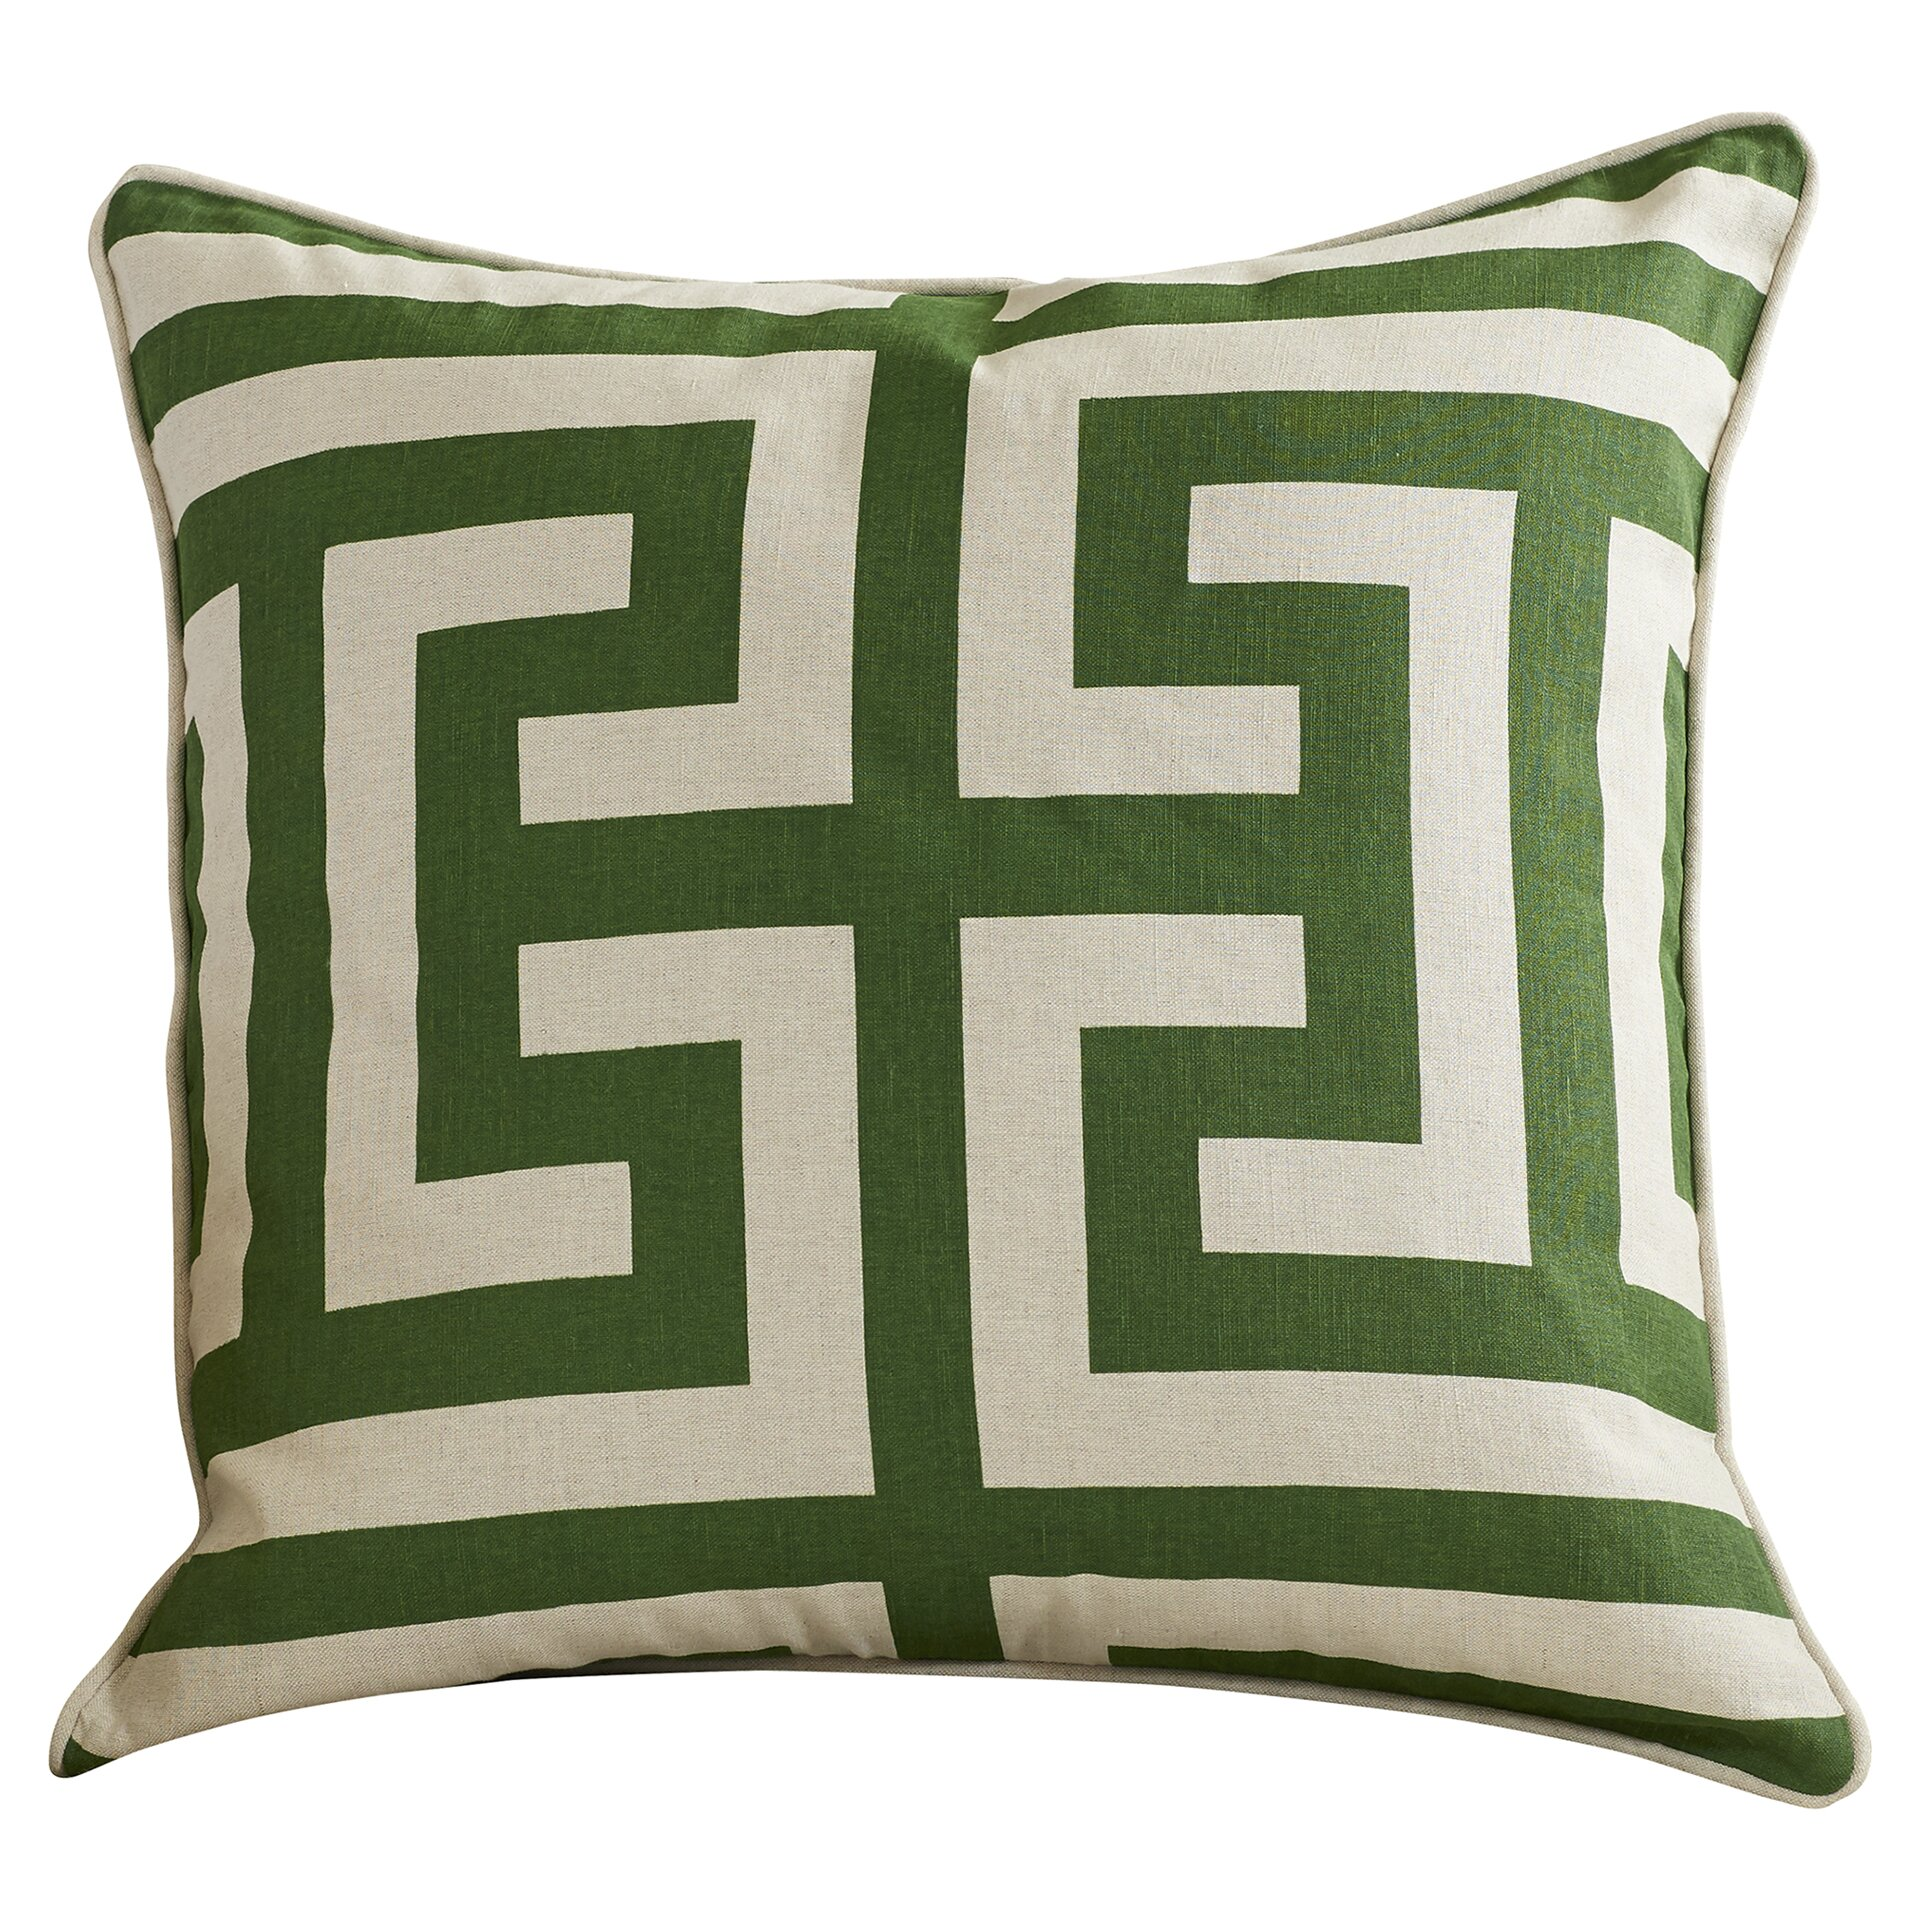 Throw Pillow Gallery : Varick Gallery Emmett Cotton Linen Throw Pillow & Reviews Wayfair